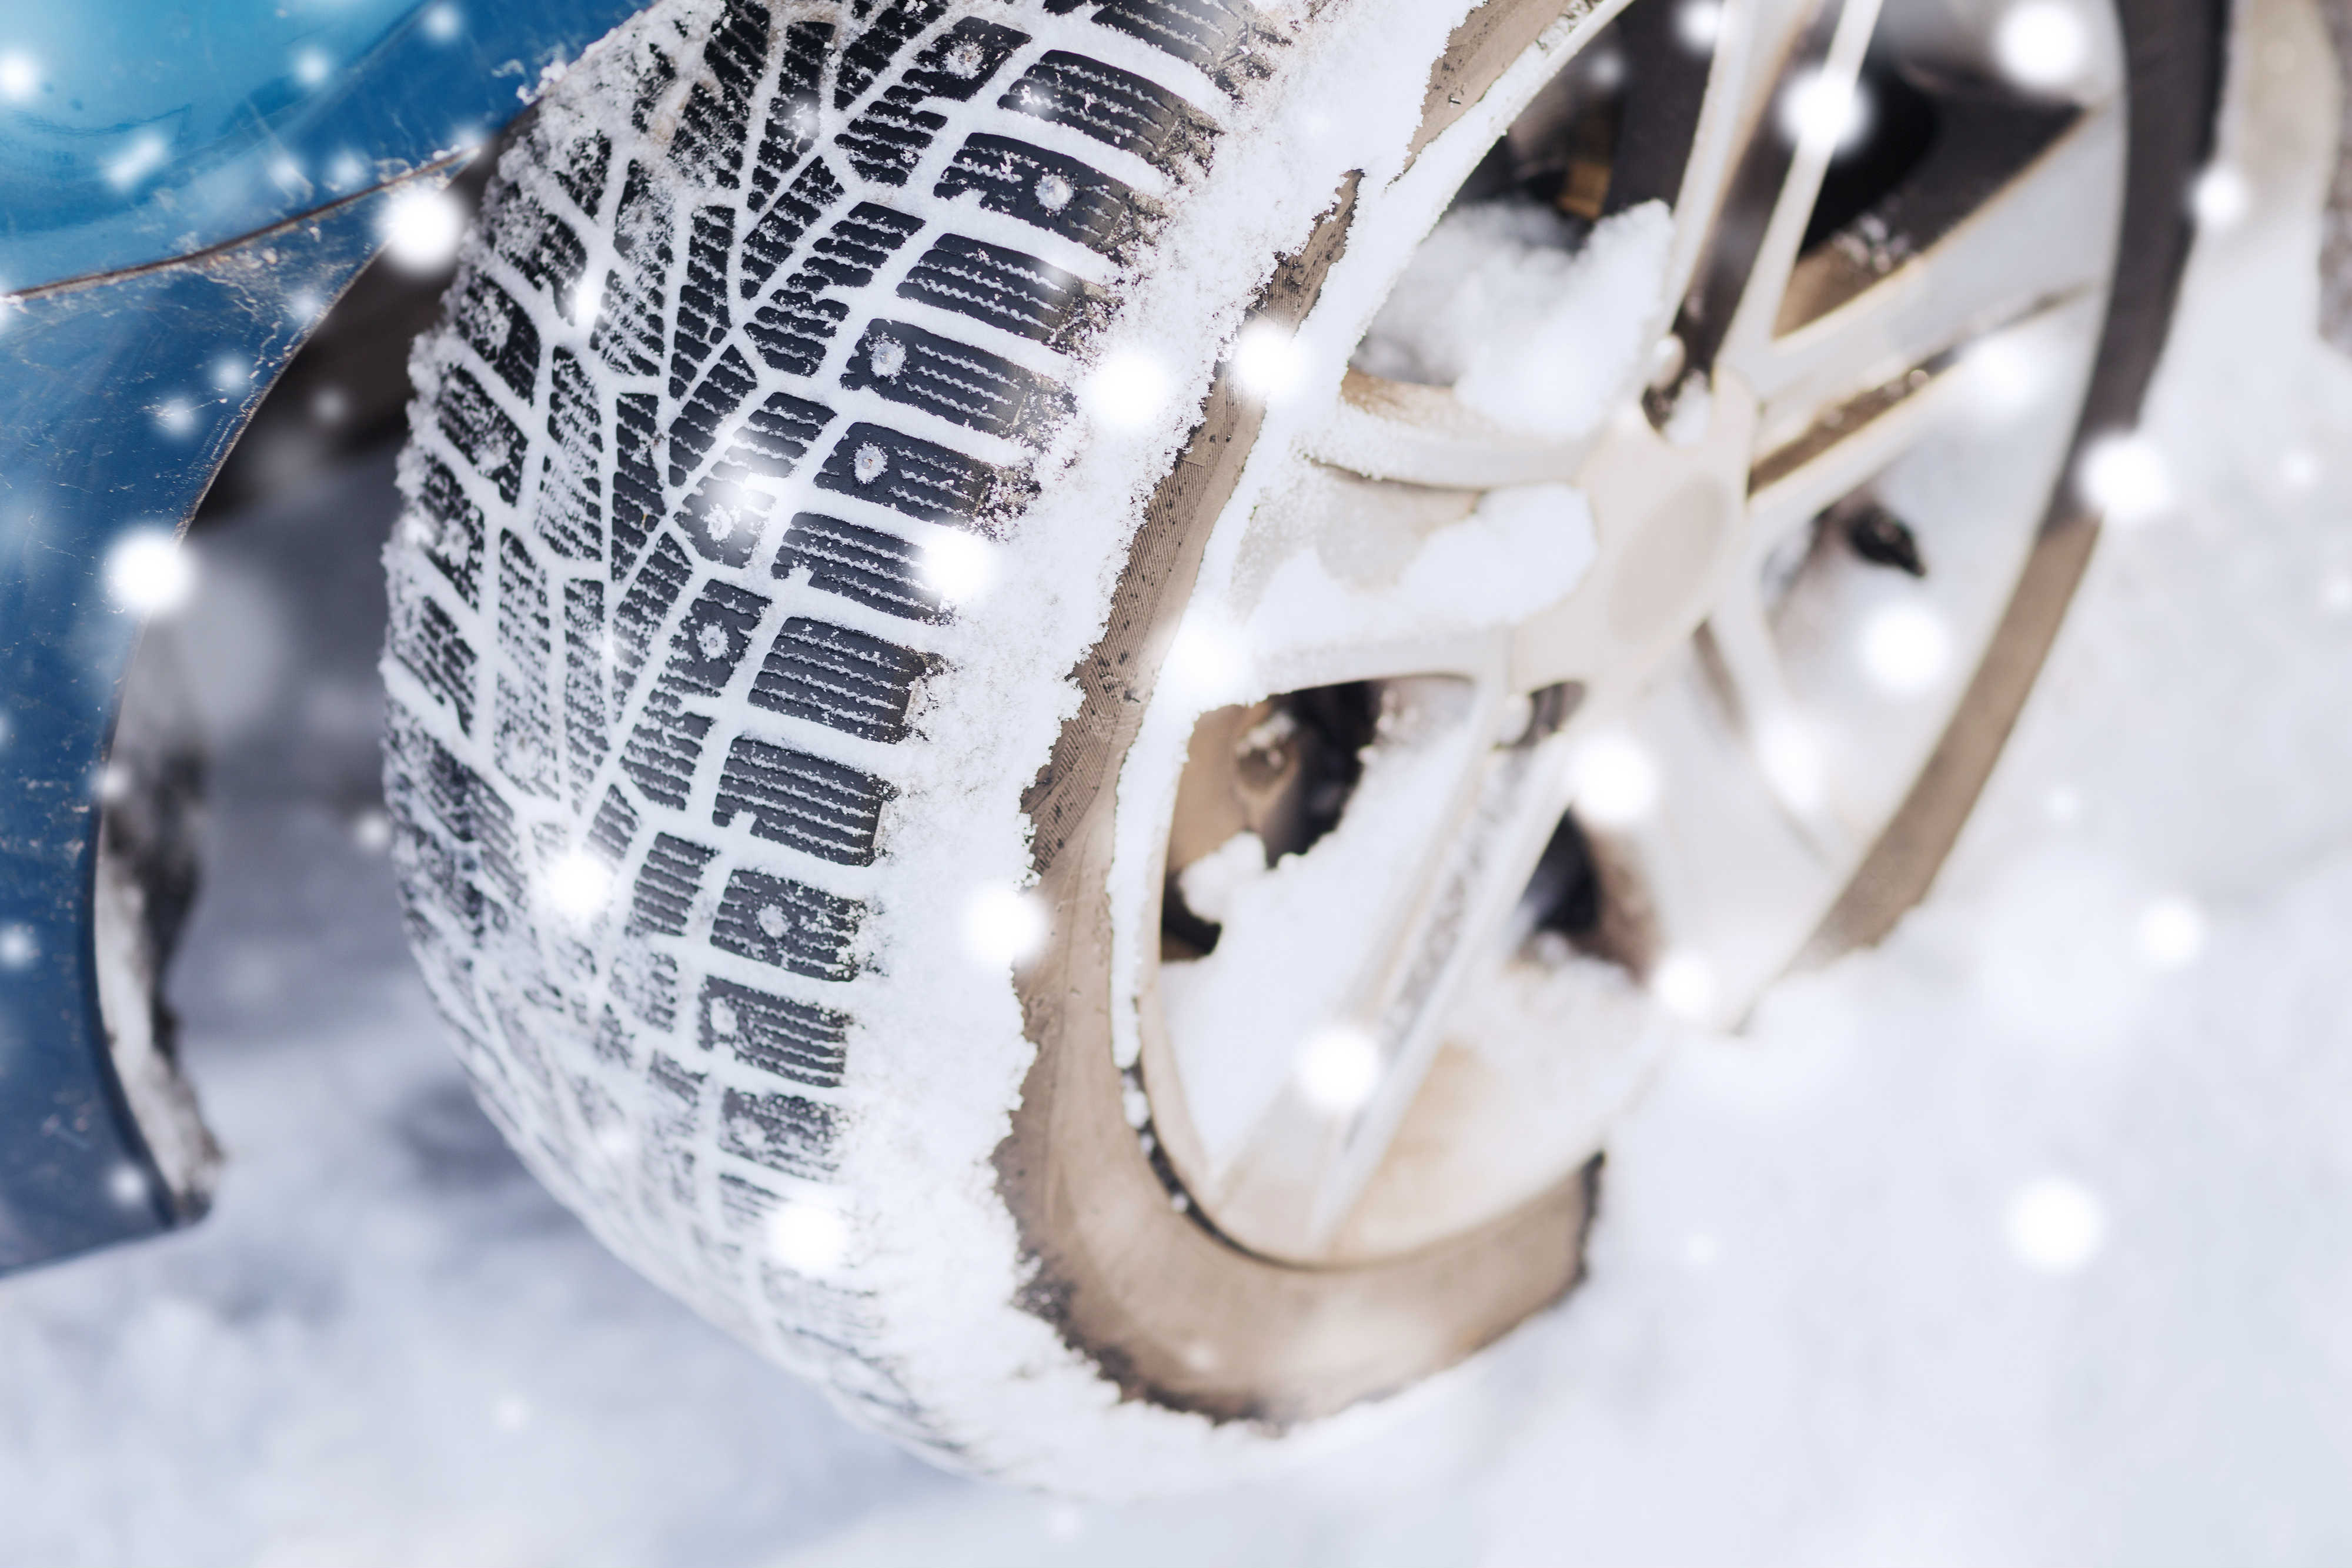 Proper winter tires will help with traction on snow and ice.